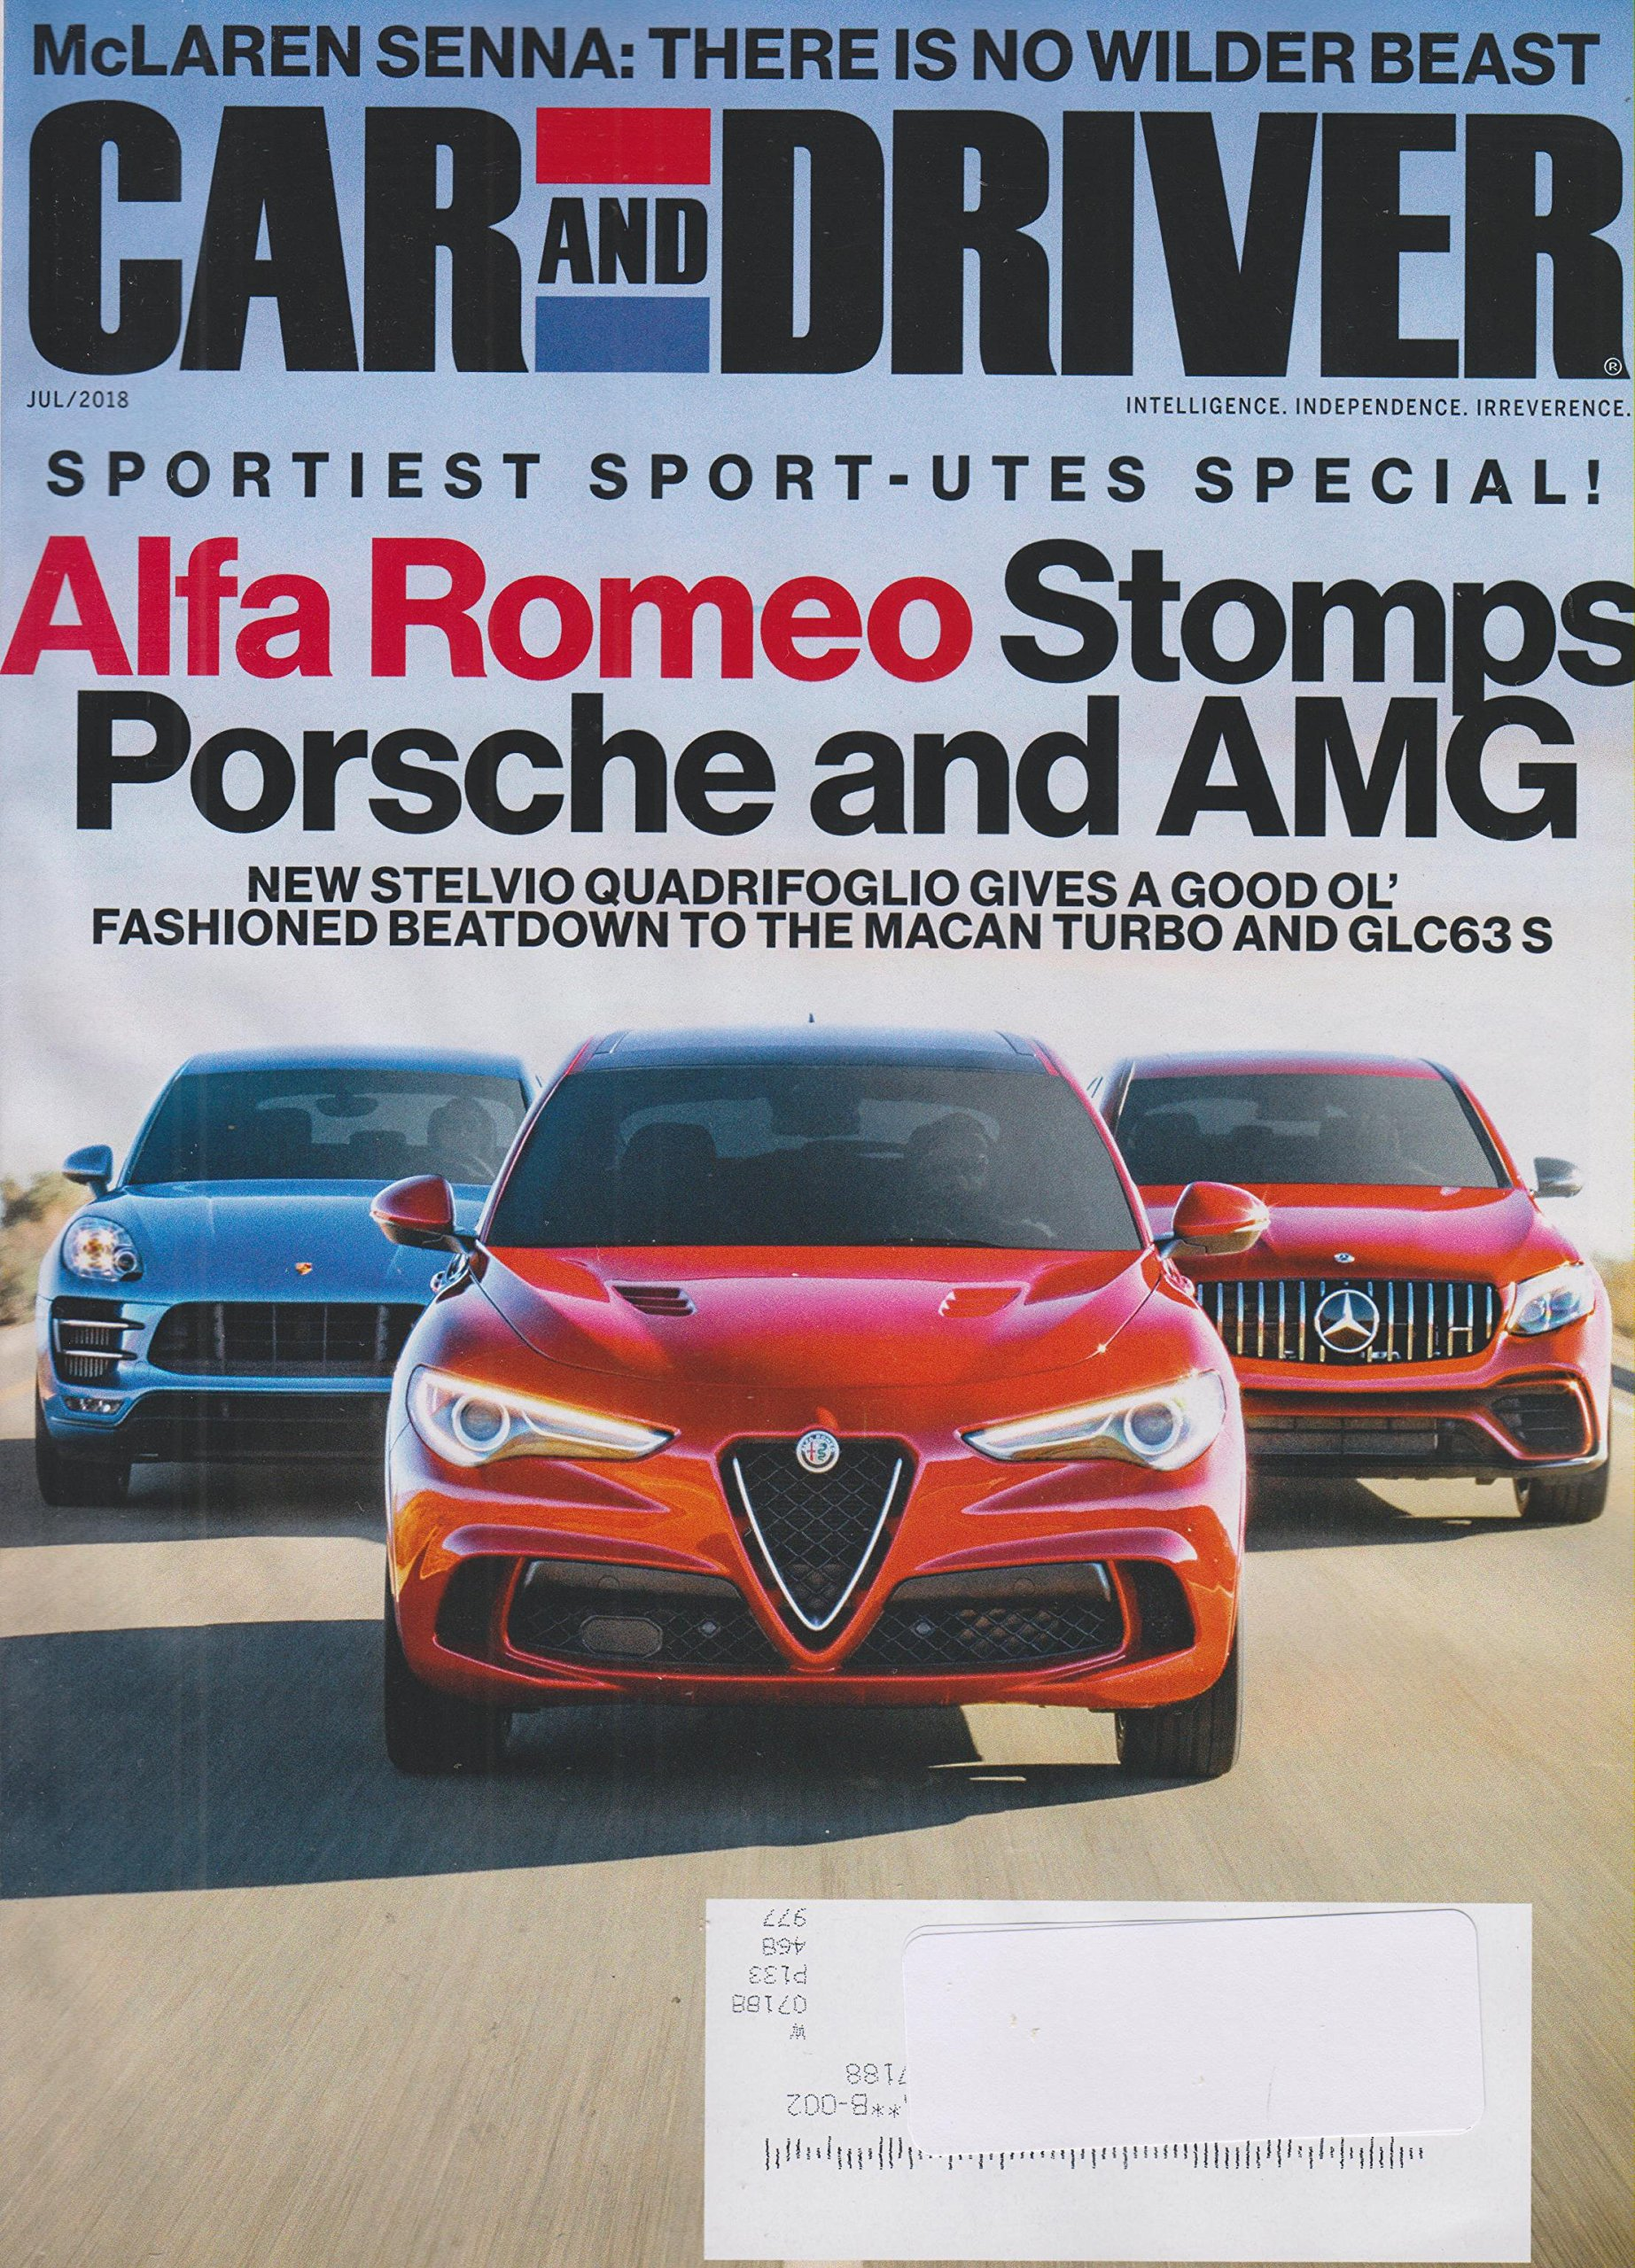 Car and Driver July 2018 Sportiest Sport-utes Special! Alfa Romeo Stomps Porsche and AMG Single Issue Magazine – 2018